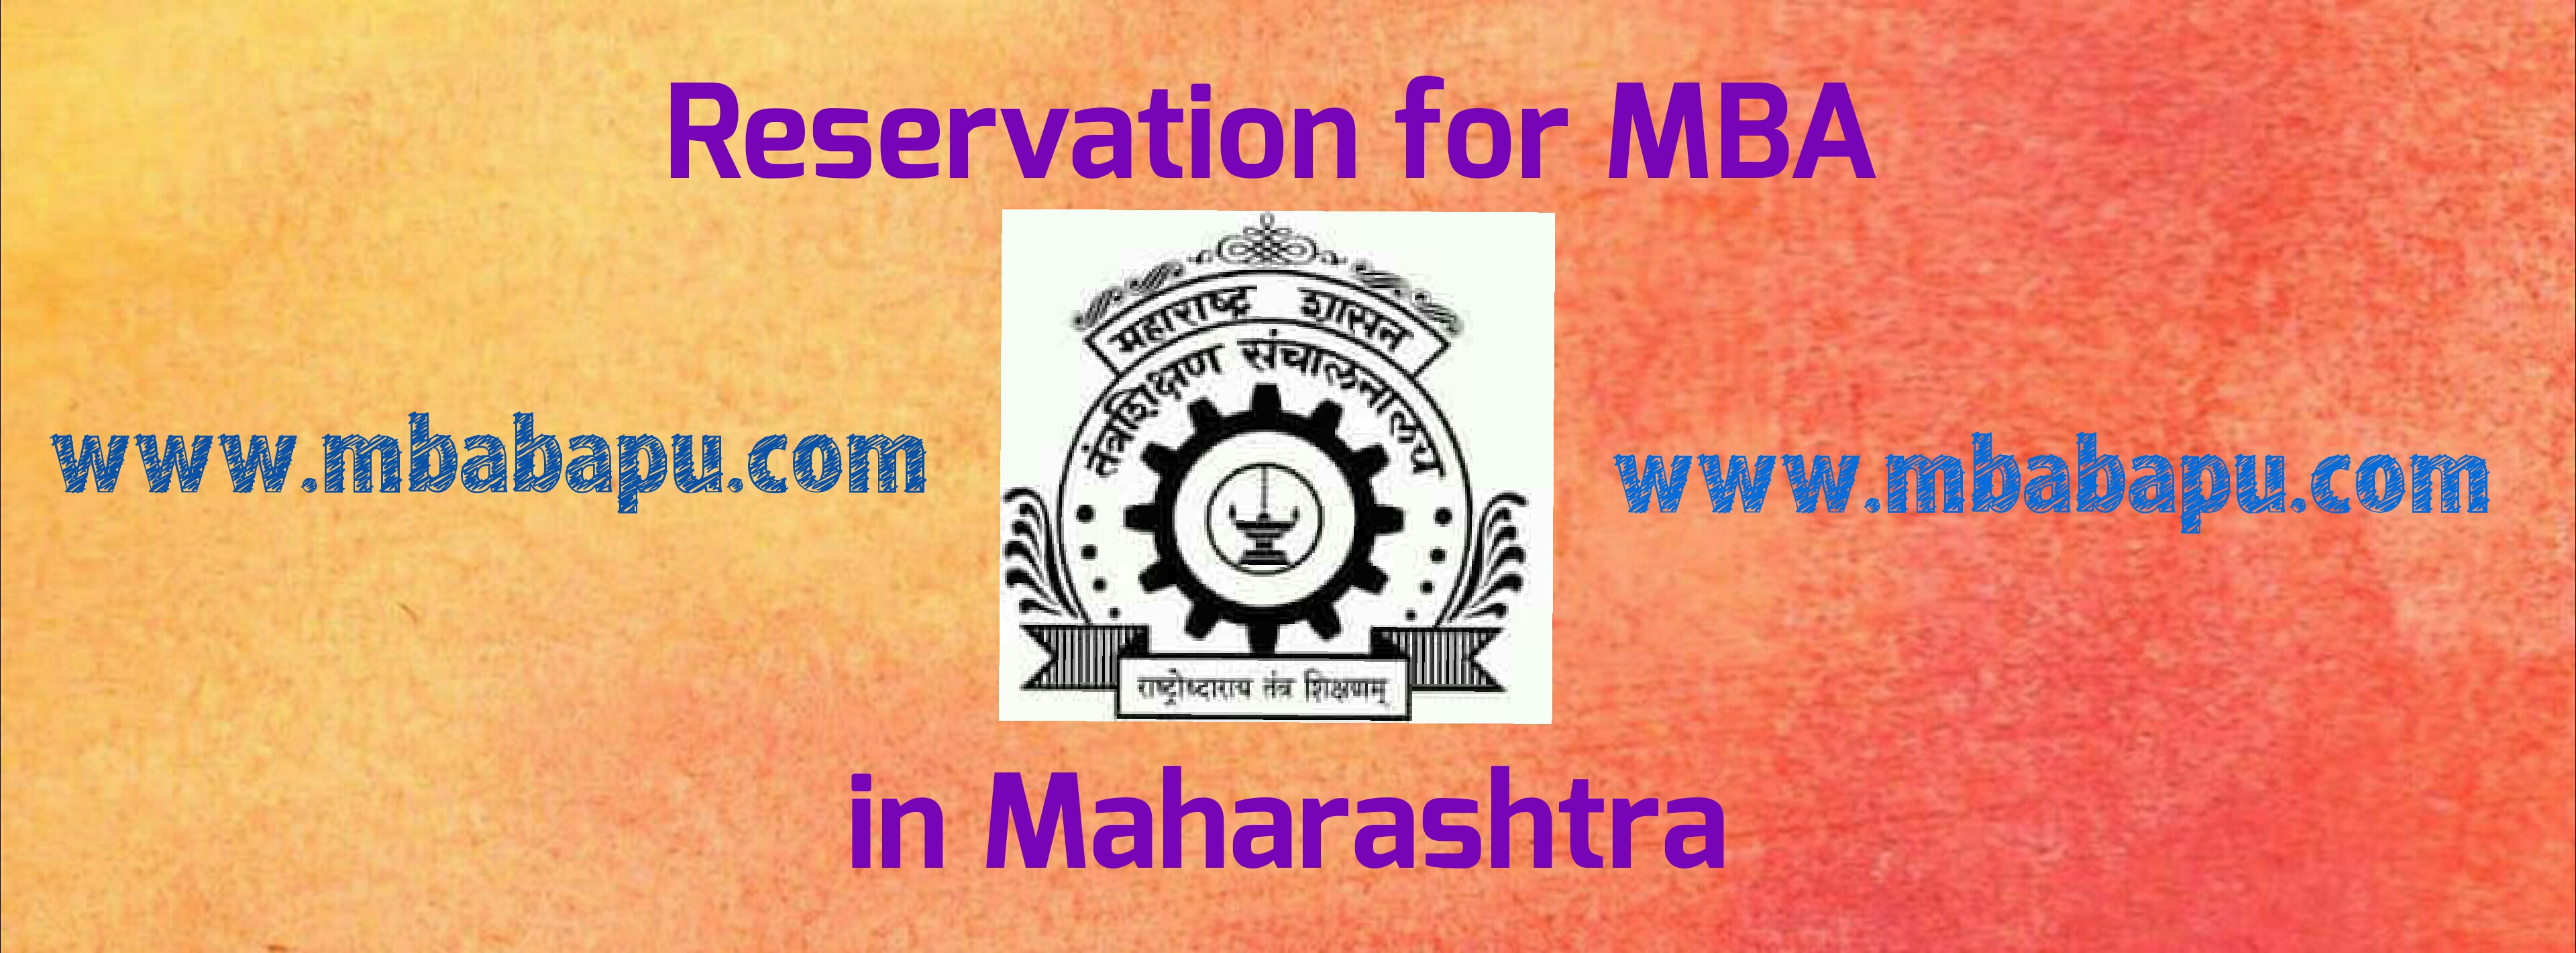 Reservation for MBA course in Maharashtra